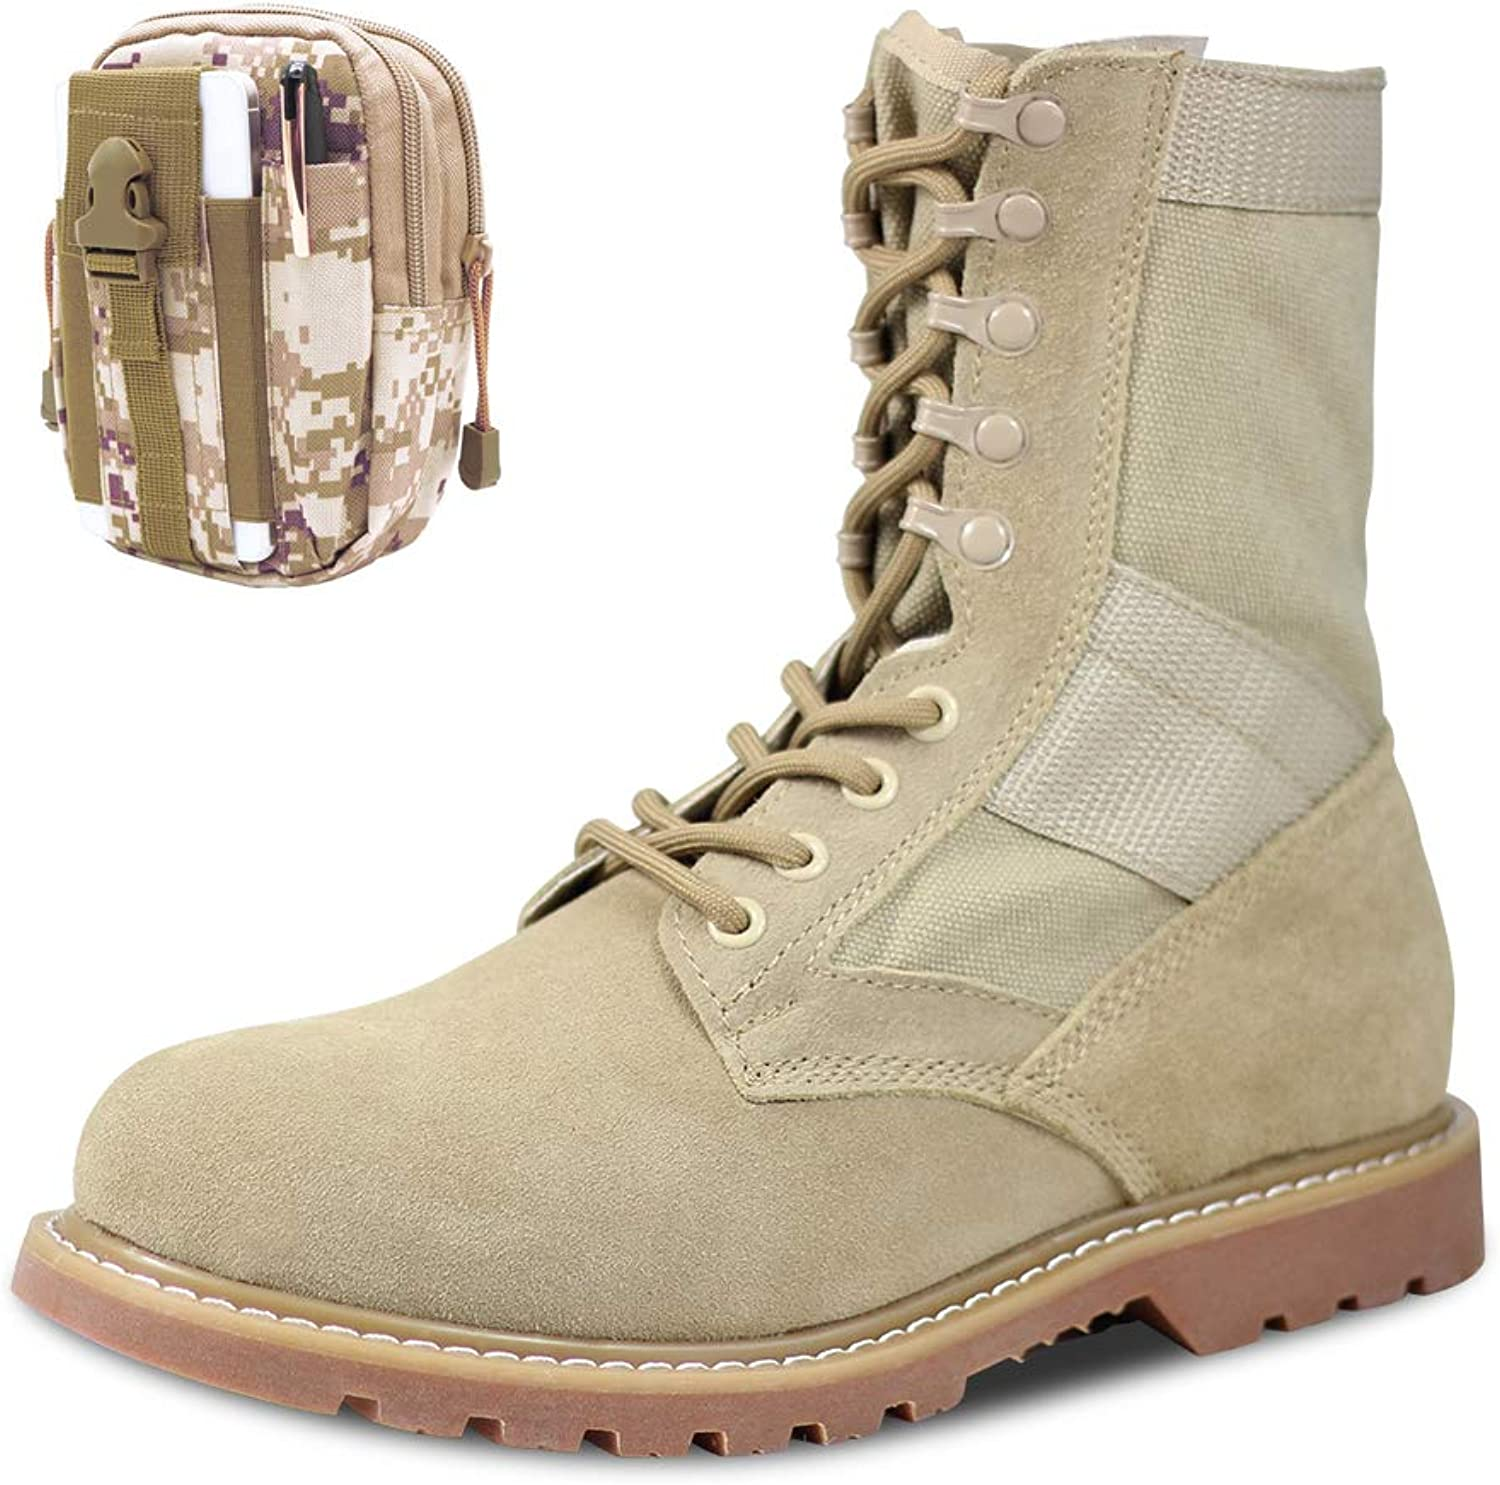 PANY Men's Military Boots Combat Boots Tactical Boots Ultralight Desert Tan Boots with Military Waist Bag